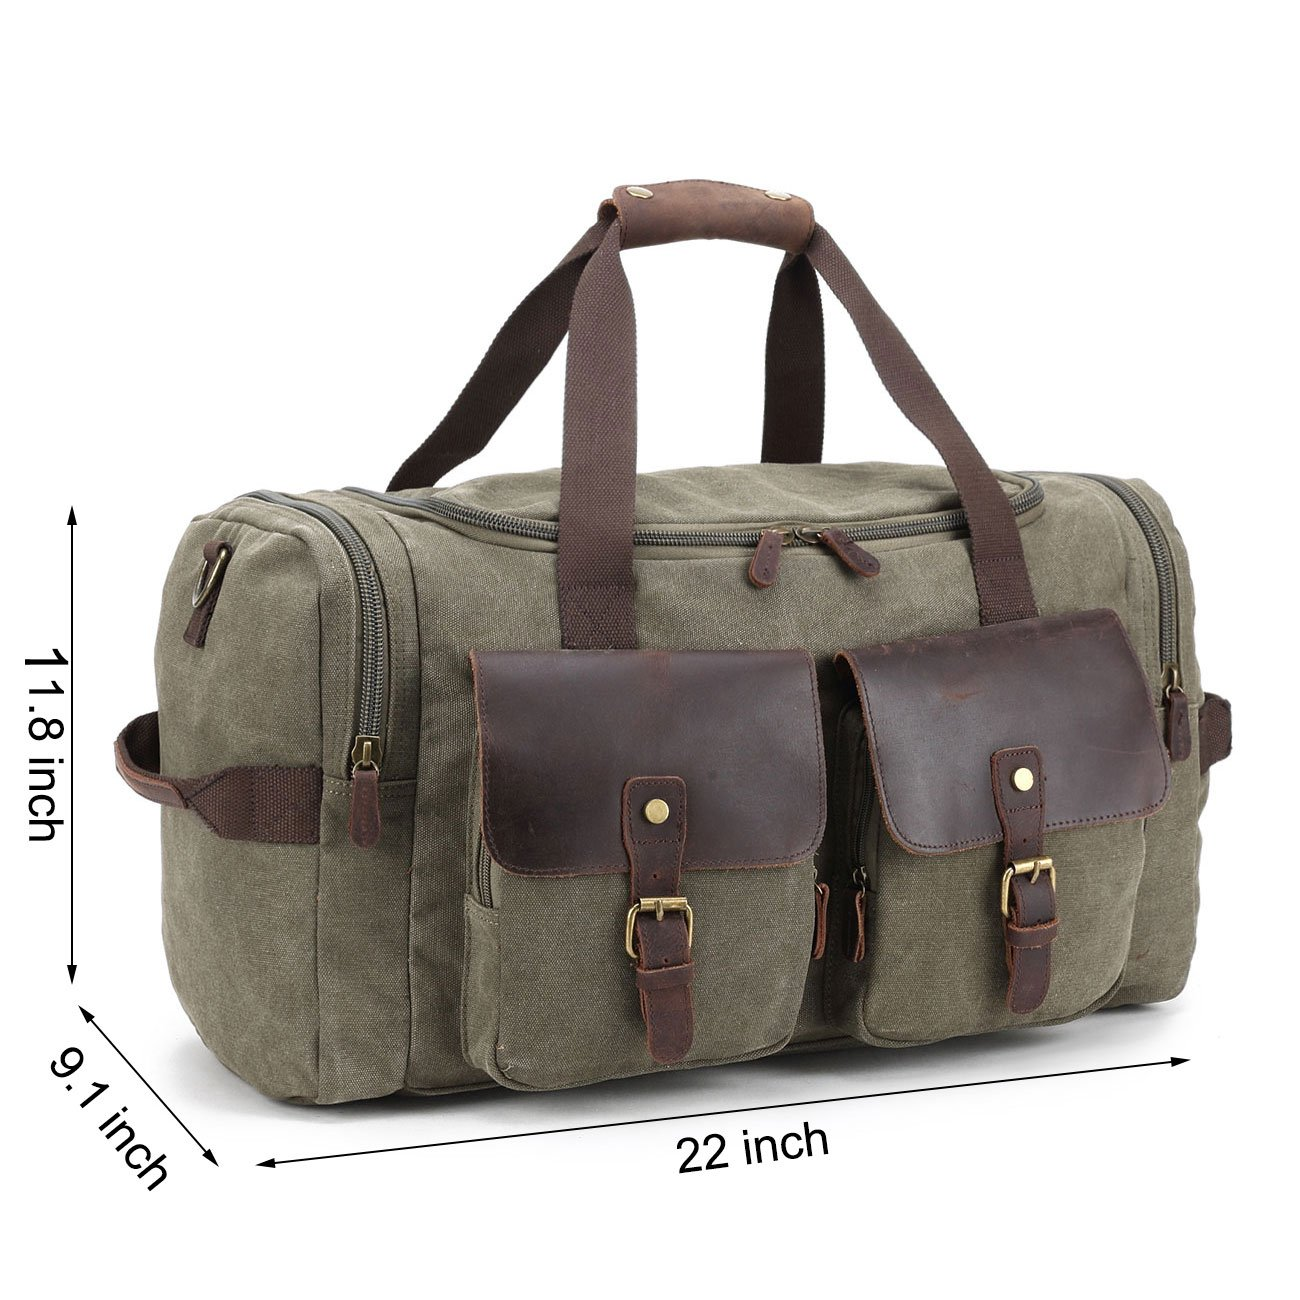 31c91b85a6c Amazon.com | Canvas Duffle Bag overnight bag 22 inch Leather Weekend Bag  Carry On Travel Bag Luggage Oversized Holdalls for Men and Women | Sports  Duffels